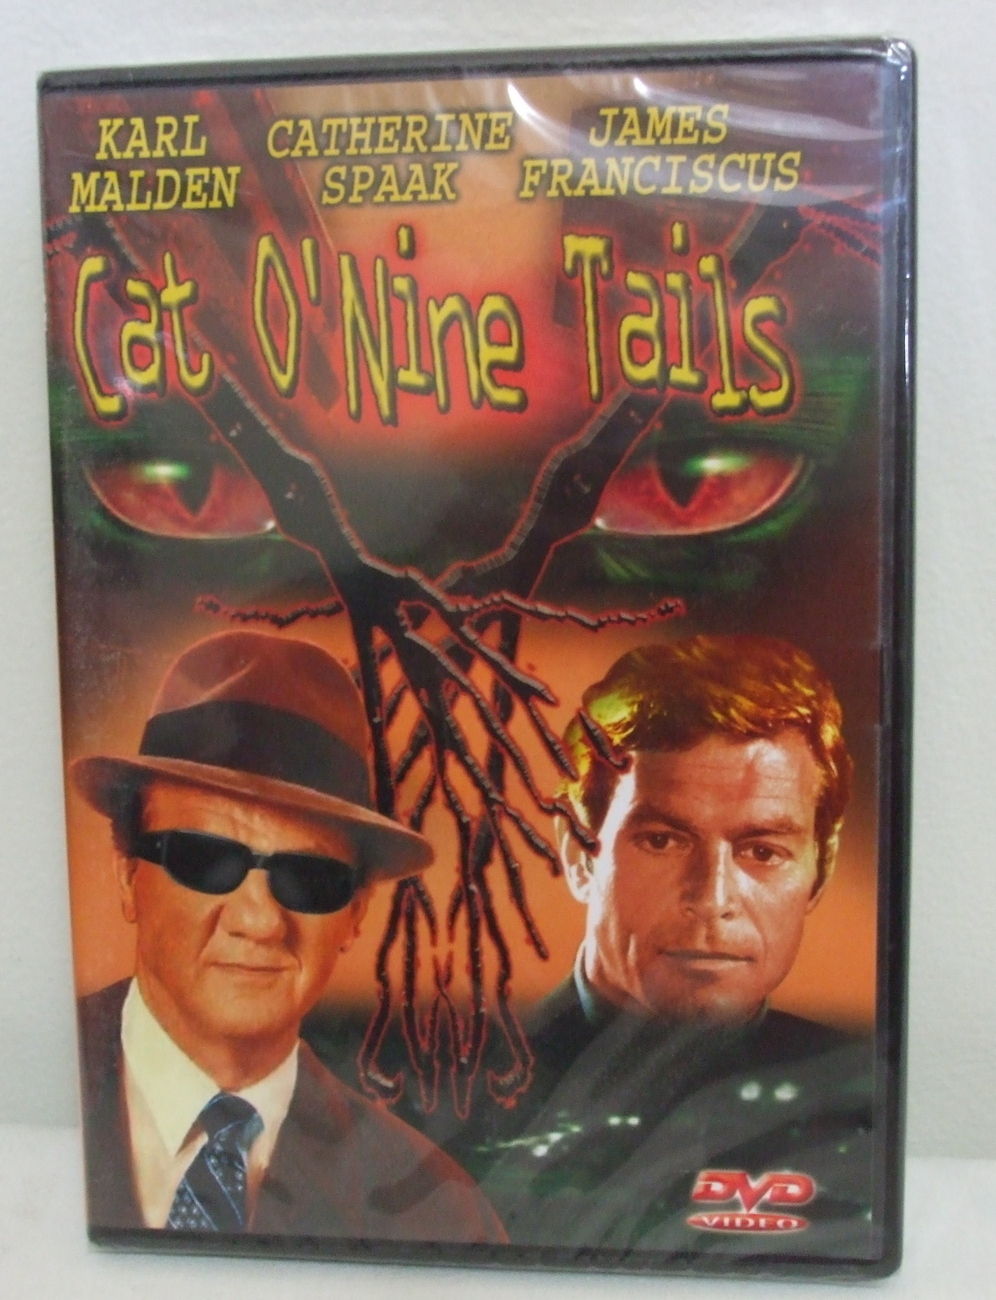 DVD New Cat ONine Tails Karl Malden and James Franciscus